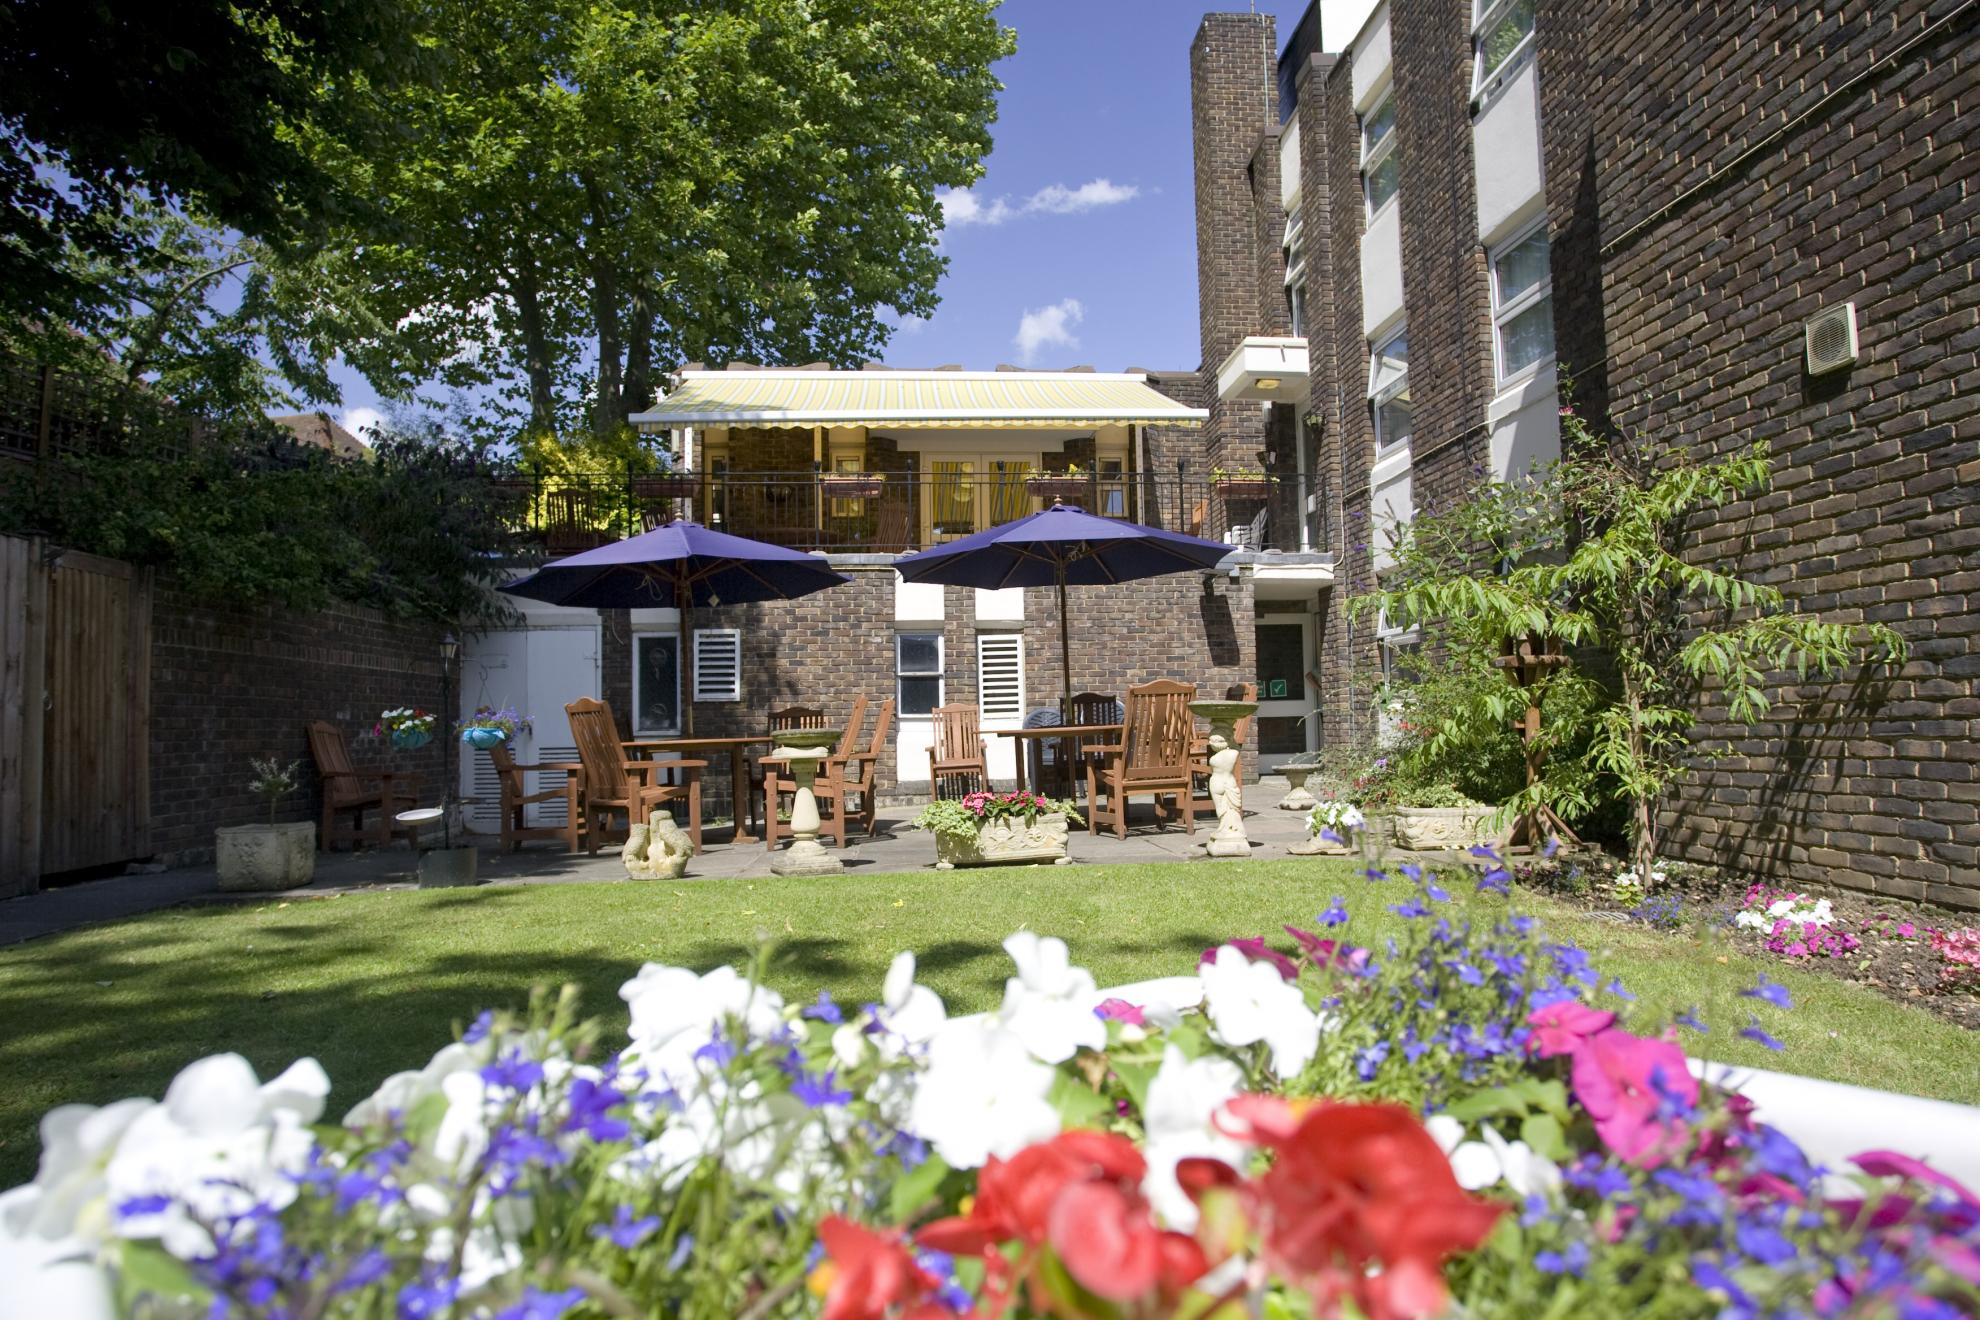 St Johns House Residential Care Home Streatham Common